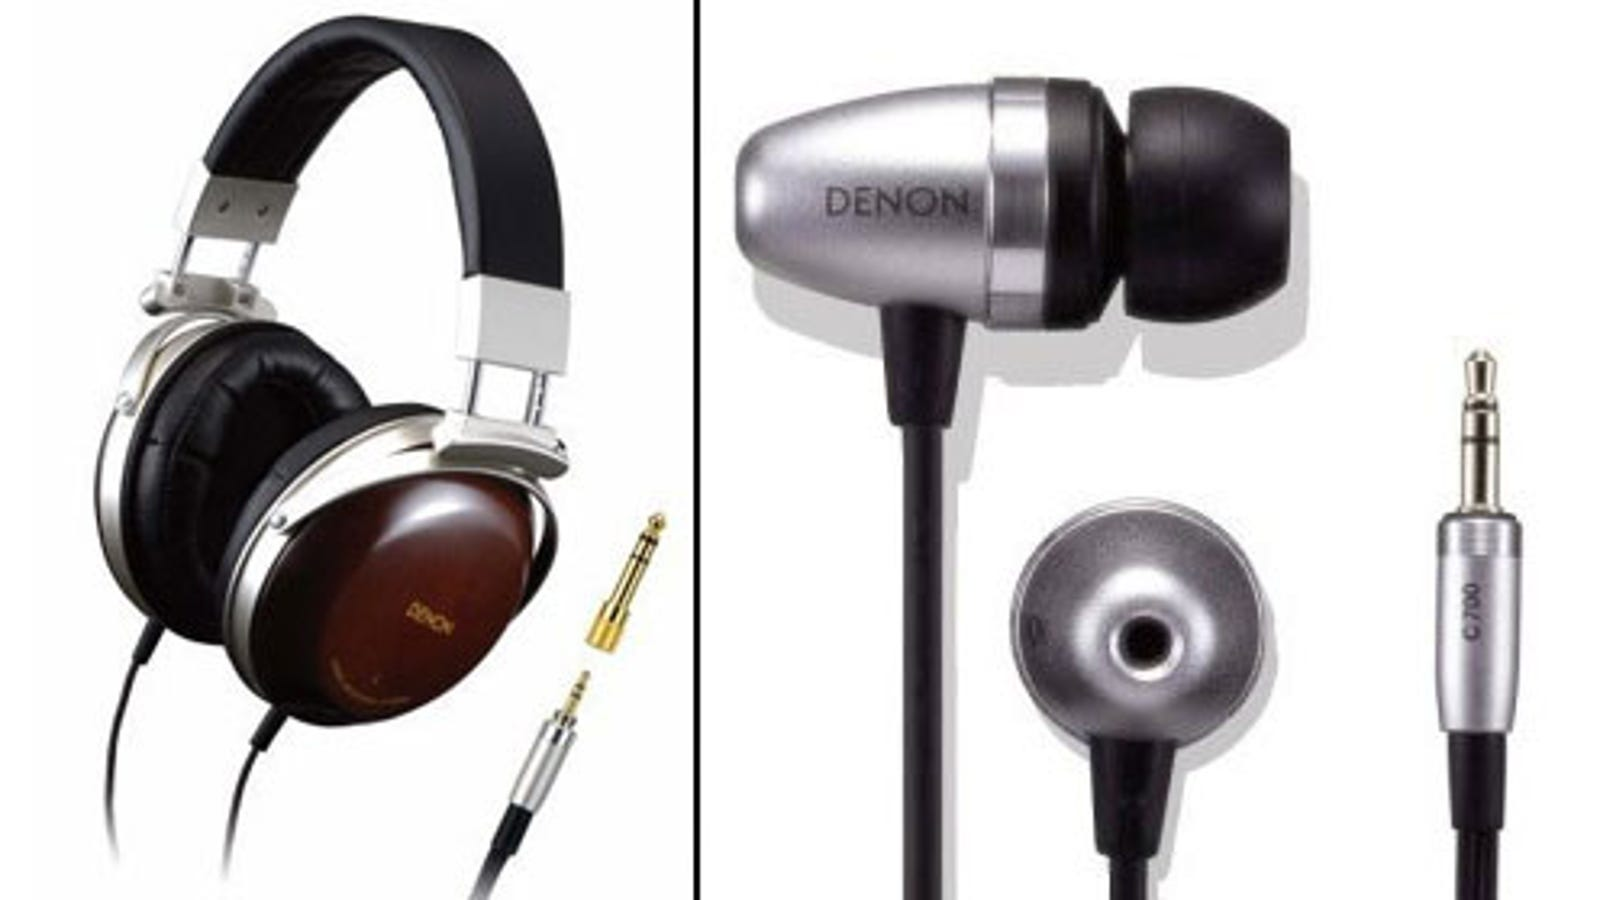 jbl headphones t450 wireless - Denon Rolls Out Variety of Headphone and Earphone Choices